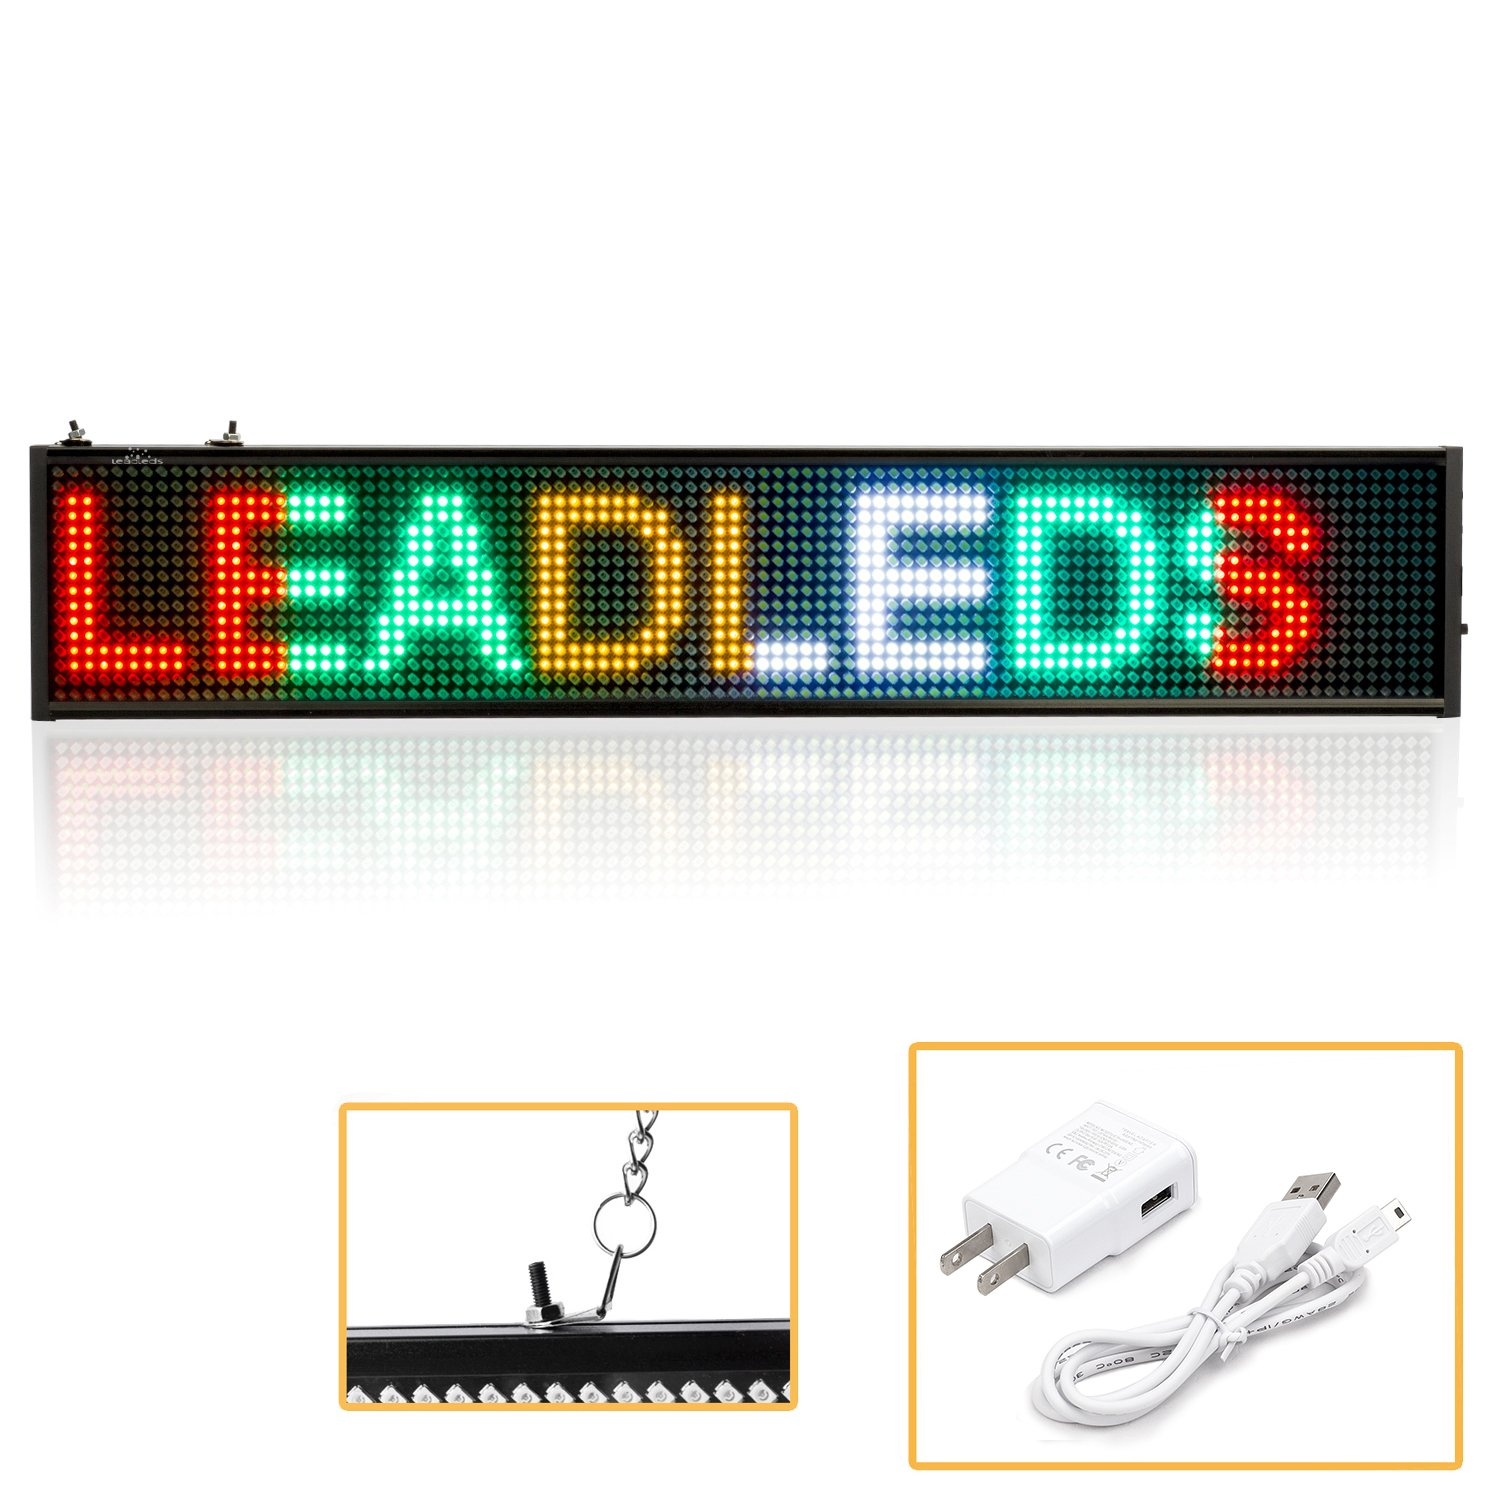 Leadleds K1696MC LED Message Board RGYW Multi-Color LED Sign Programmable Scrolling for Business Home Decoration Christmas Sign Lighting (20'' x 4'')